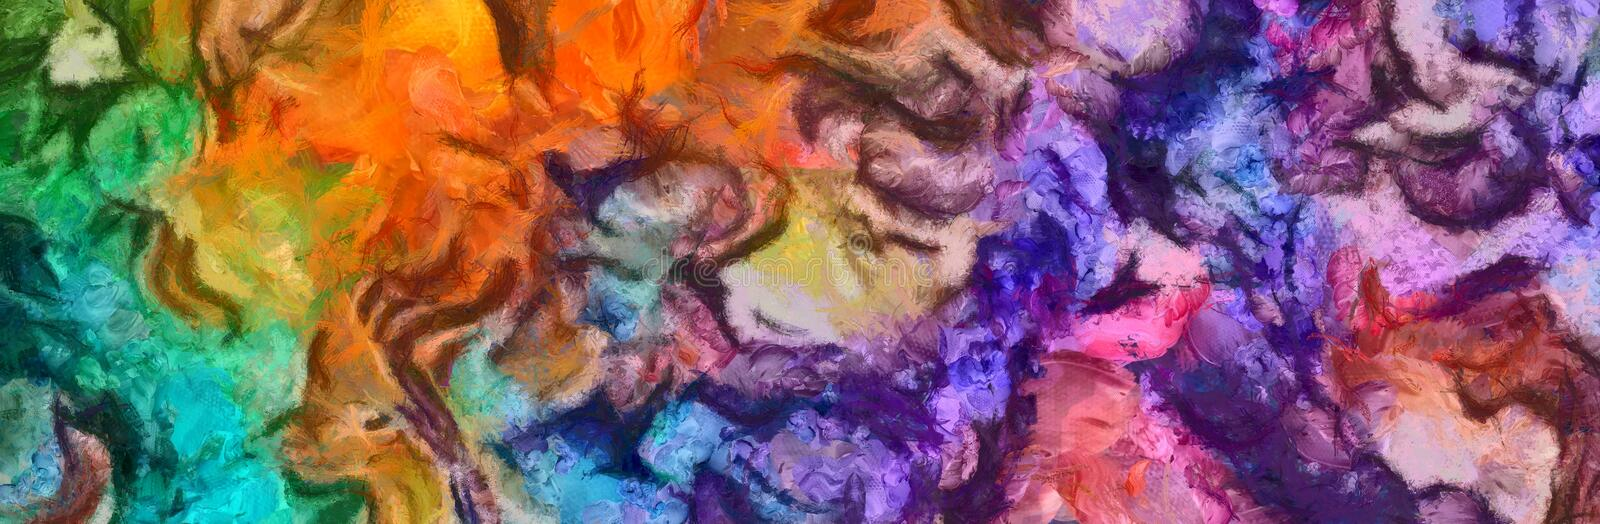 Colorful dirty grunge abstract background. Dry oil paint brush strokes. Close up design pattern. Abstract grunge texture closeup background. Oil painting design vector illustration